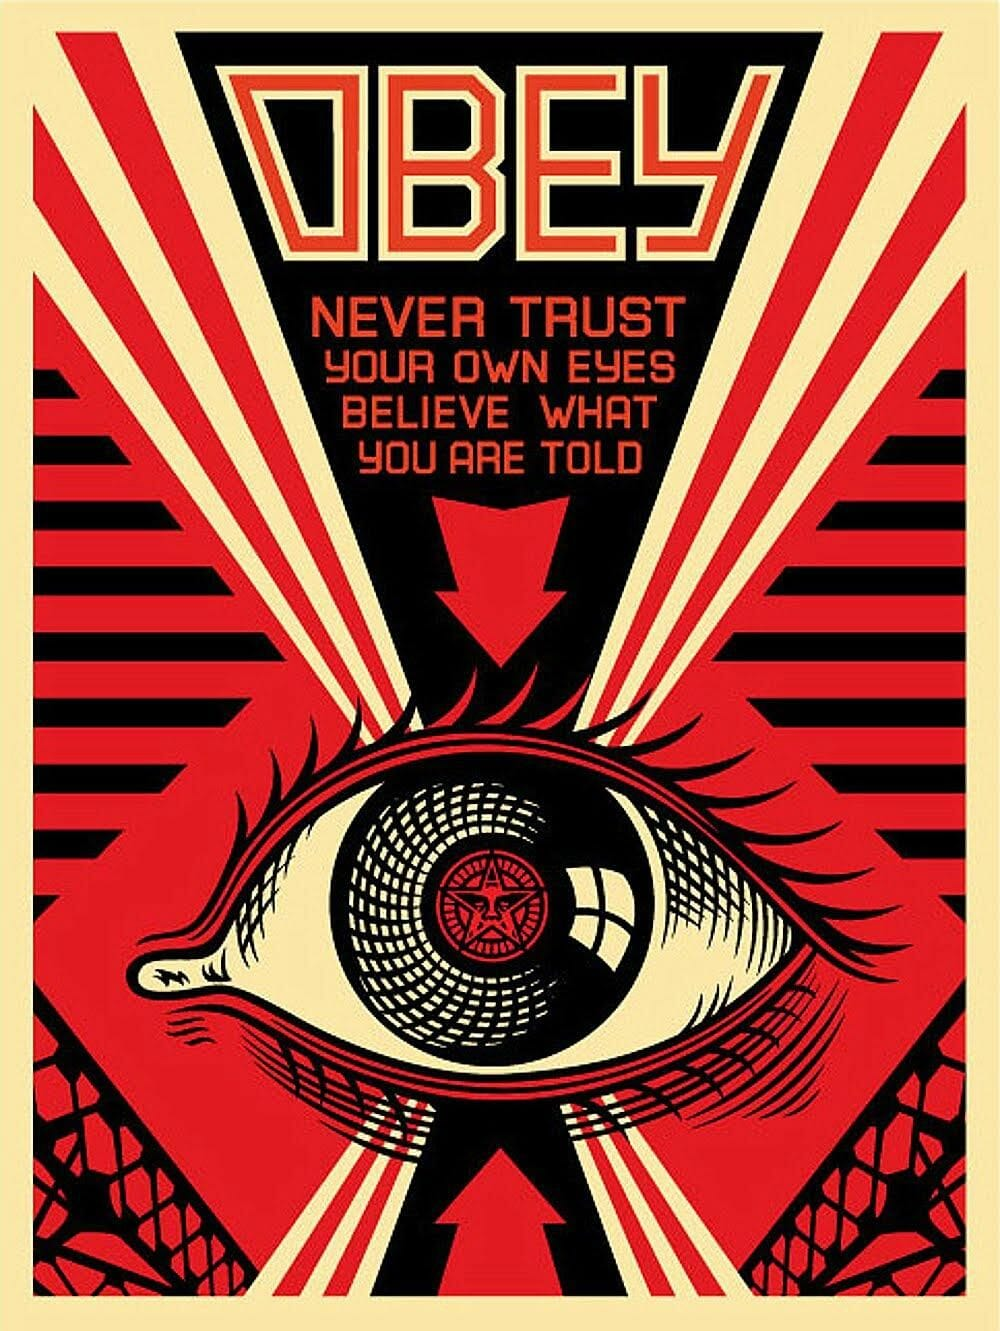 inspiration 1984 propagande oeil big brother rouge